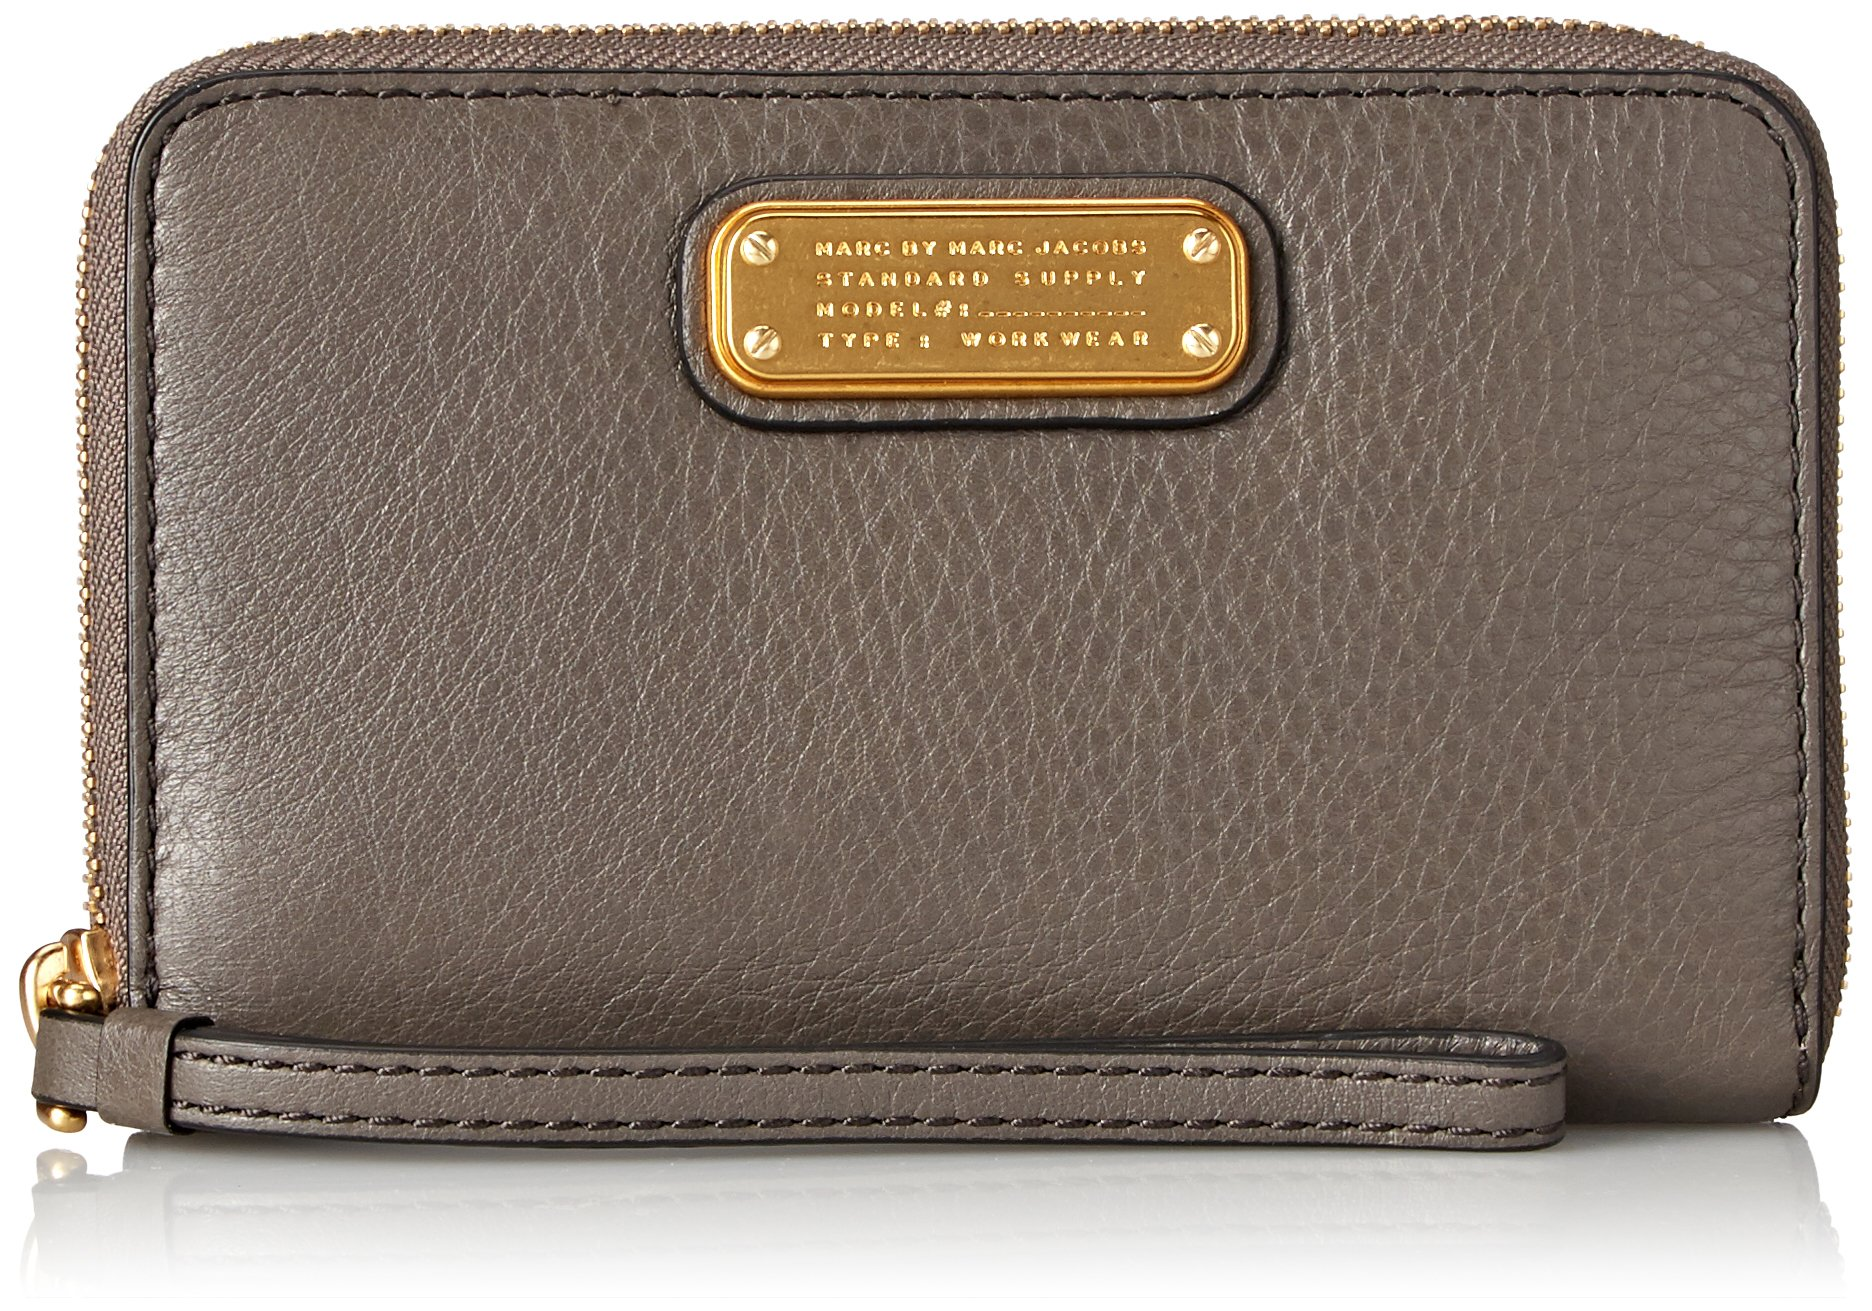 Marc by Marc Jacobs New Q Slgs Wingman Wallet, Faded Aluminum, One Size by Marc by Marc Jacobs